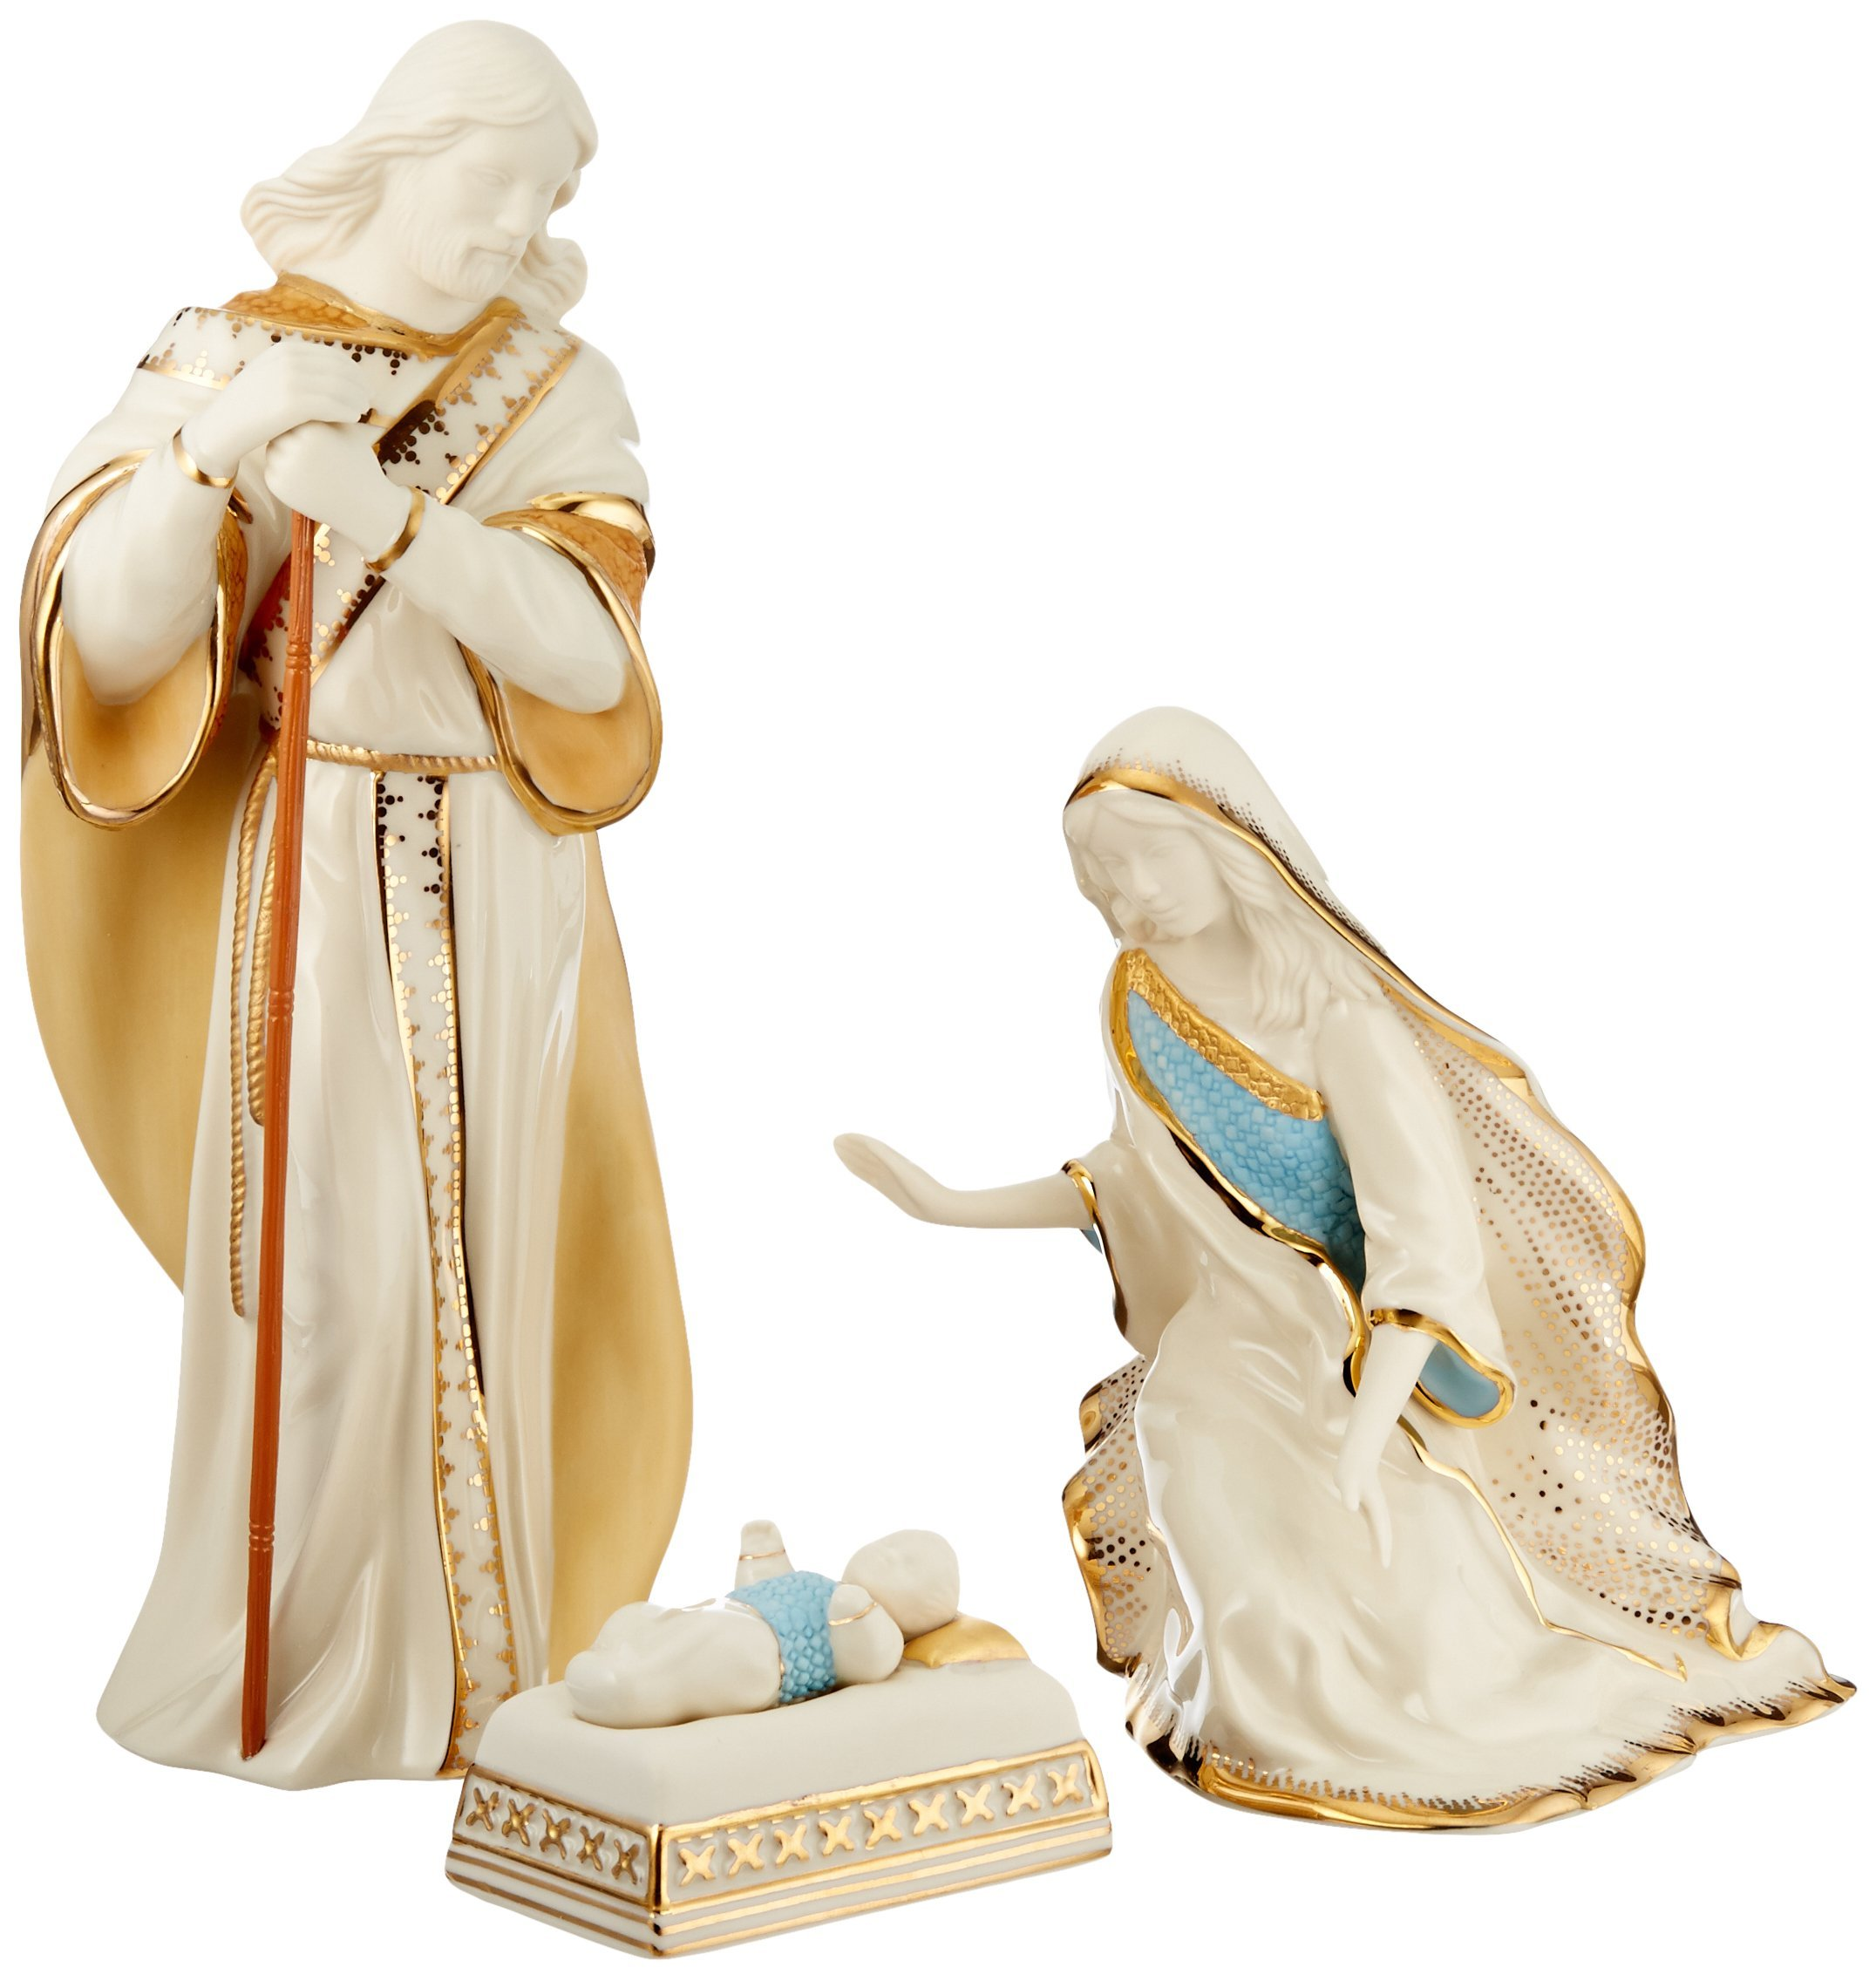 Lenox First Blessing Nativity The Holy Family, Set of 3 by Lenox (Image #1)